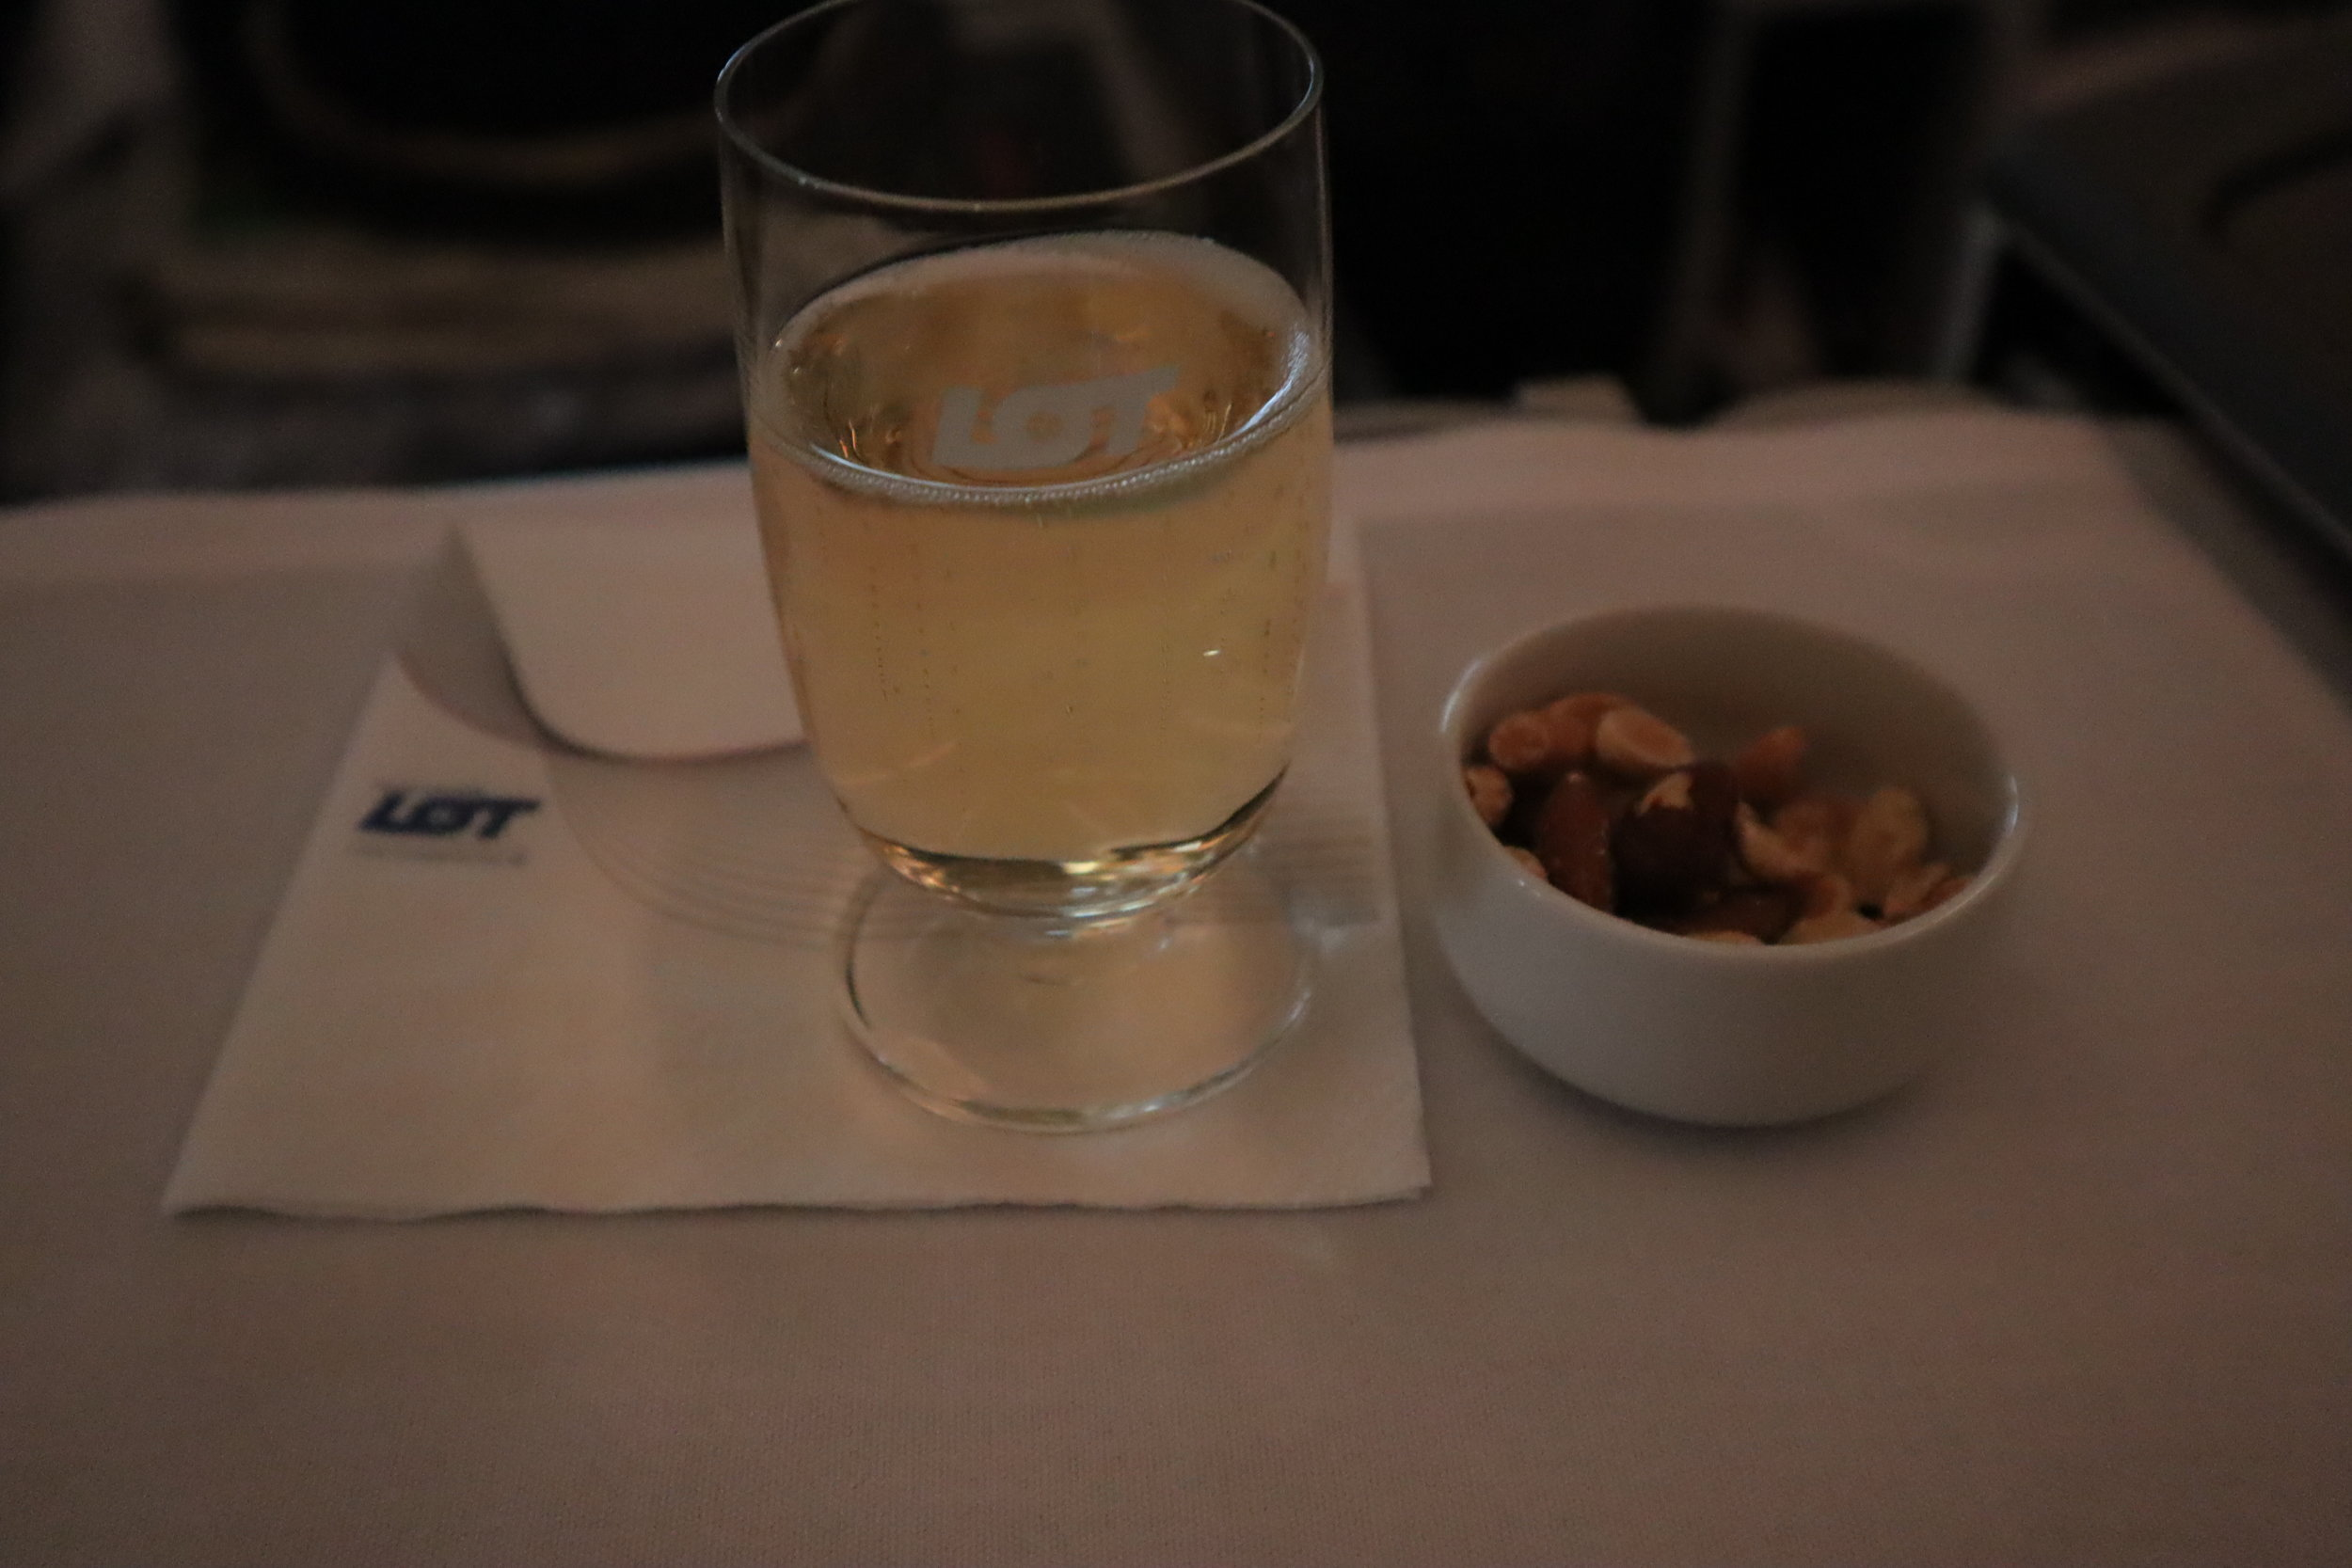 LOT Polish Airlines business class – Mixed nuts and champagne